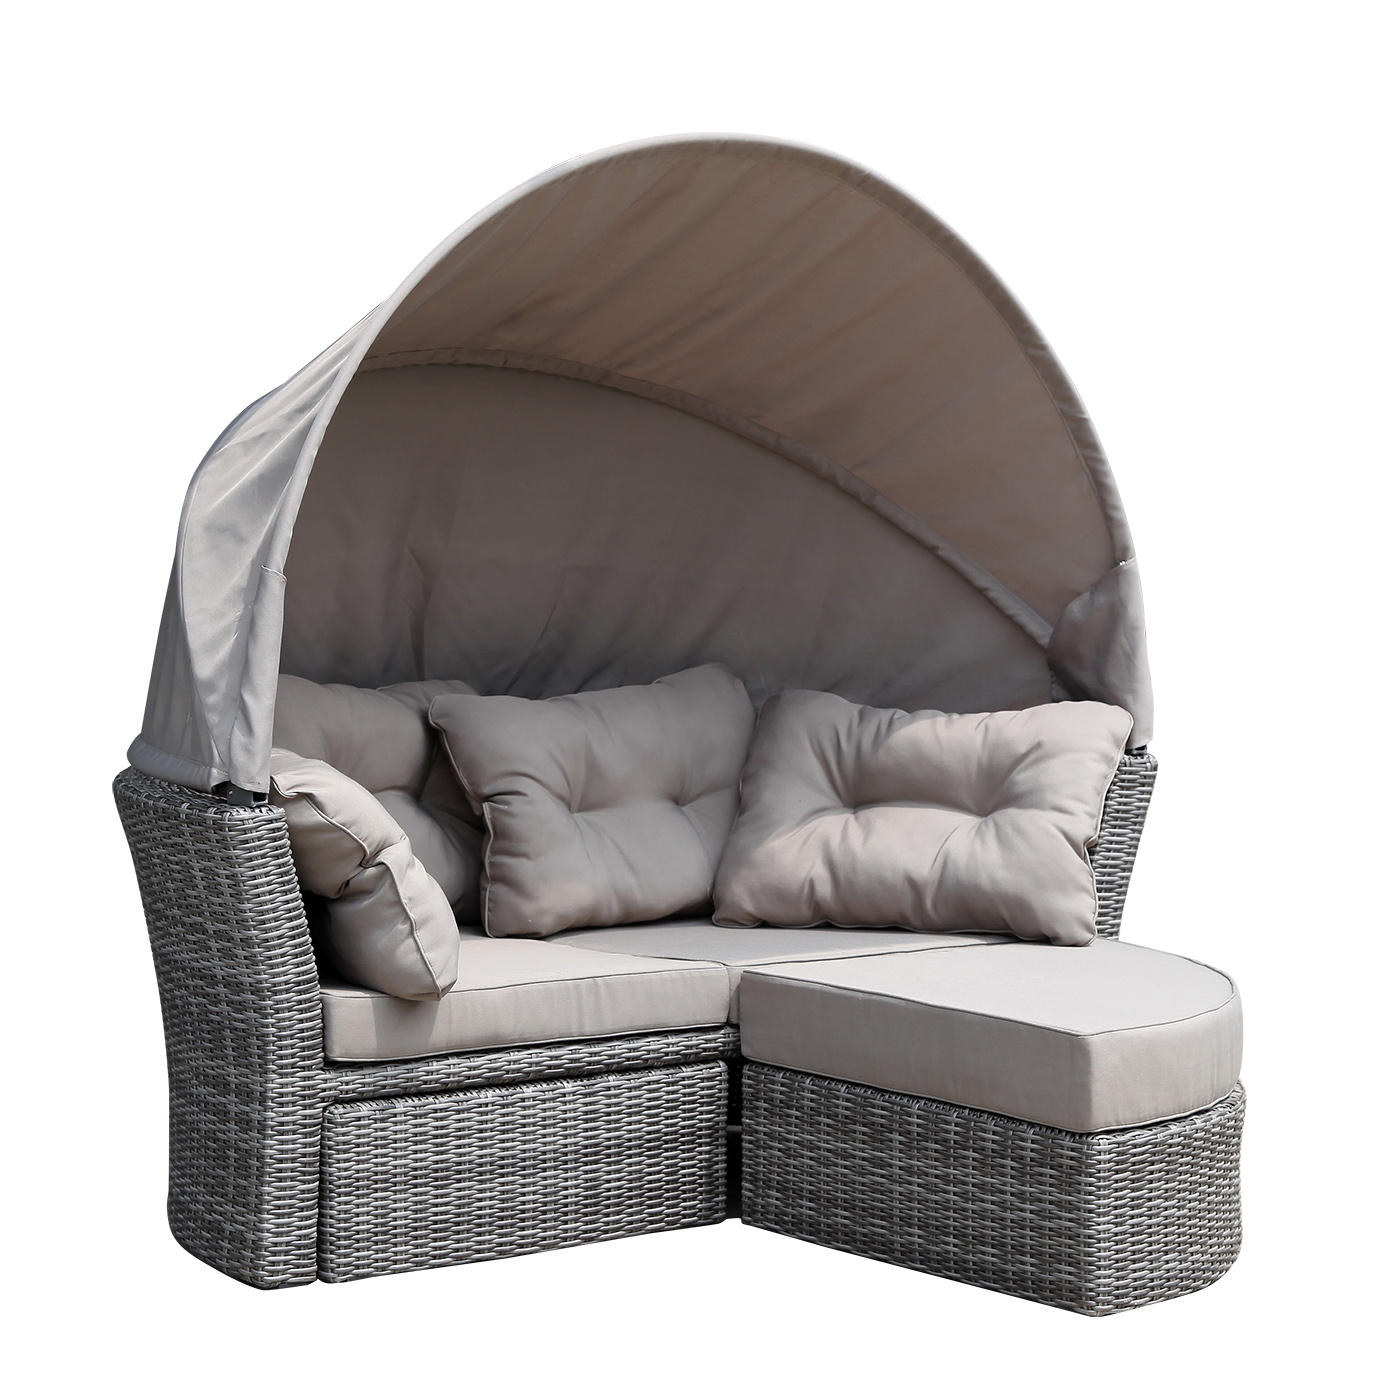 liegeinsel sonneninsel liegemuschel liegesofa marbella 200x187cm rattan grau ebay. Black Bedroom Furniture Sets. Home Design Ideas